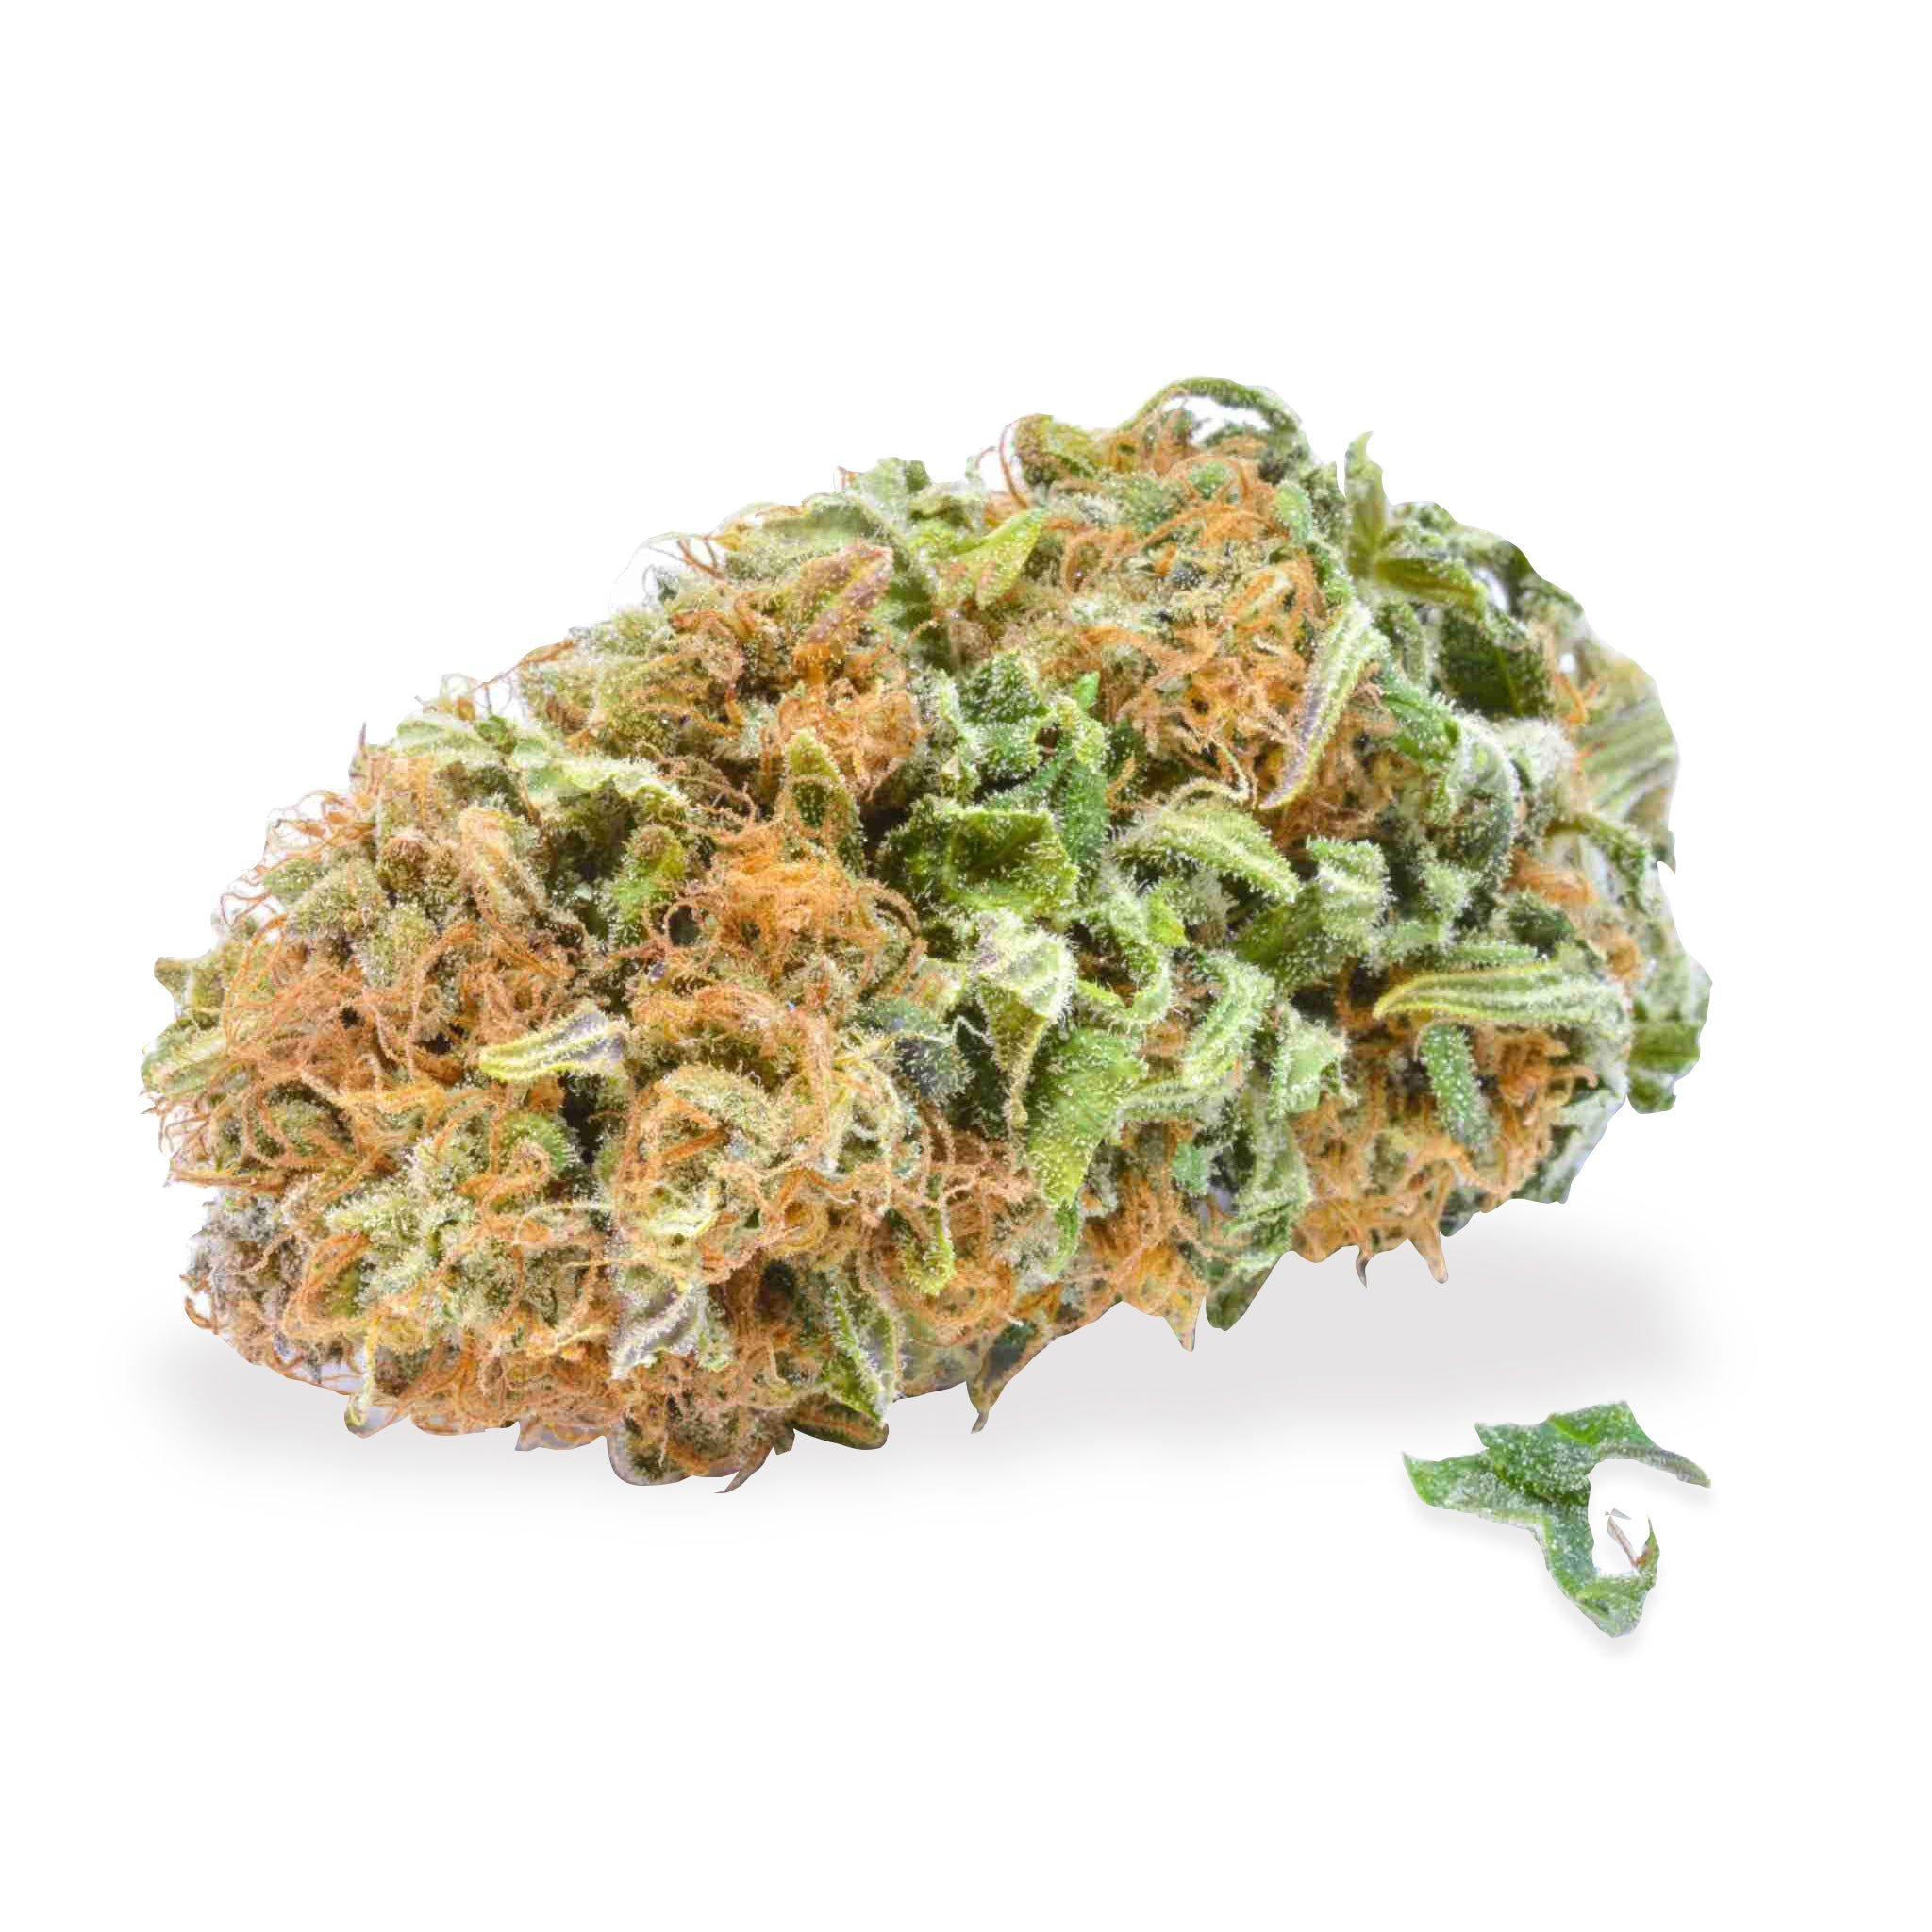 Peacemaker | Swiss Botanic | CBD Cannabis | uWeed | Swiss CBD Shop